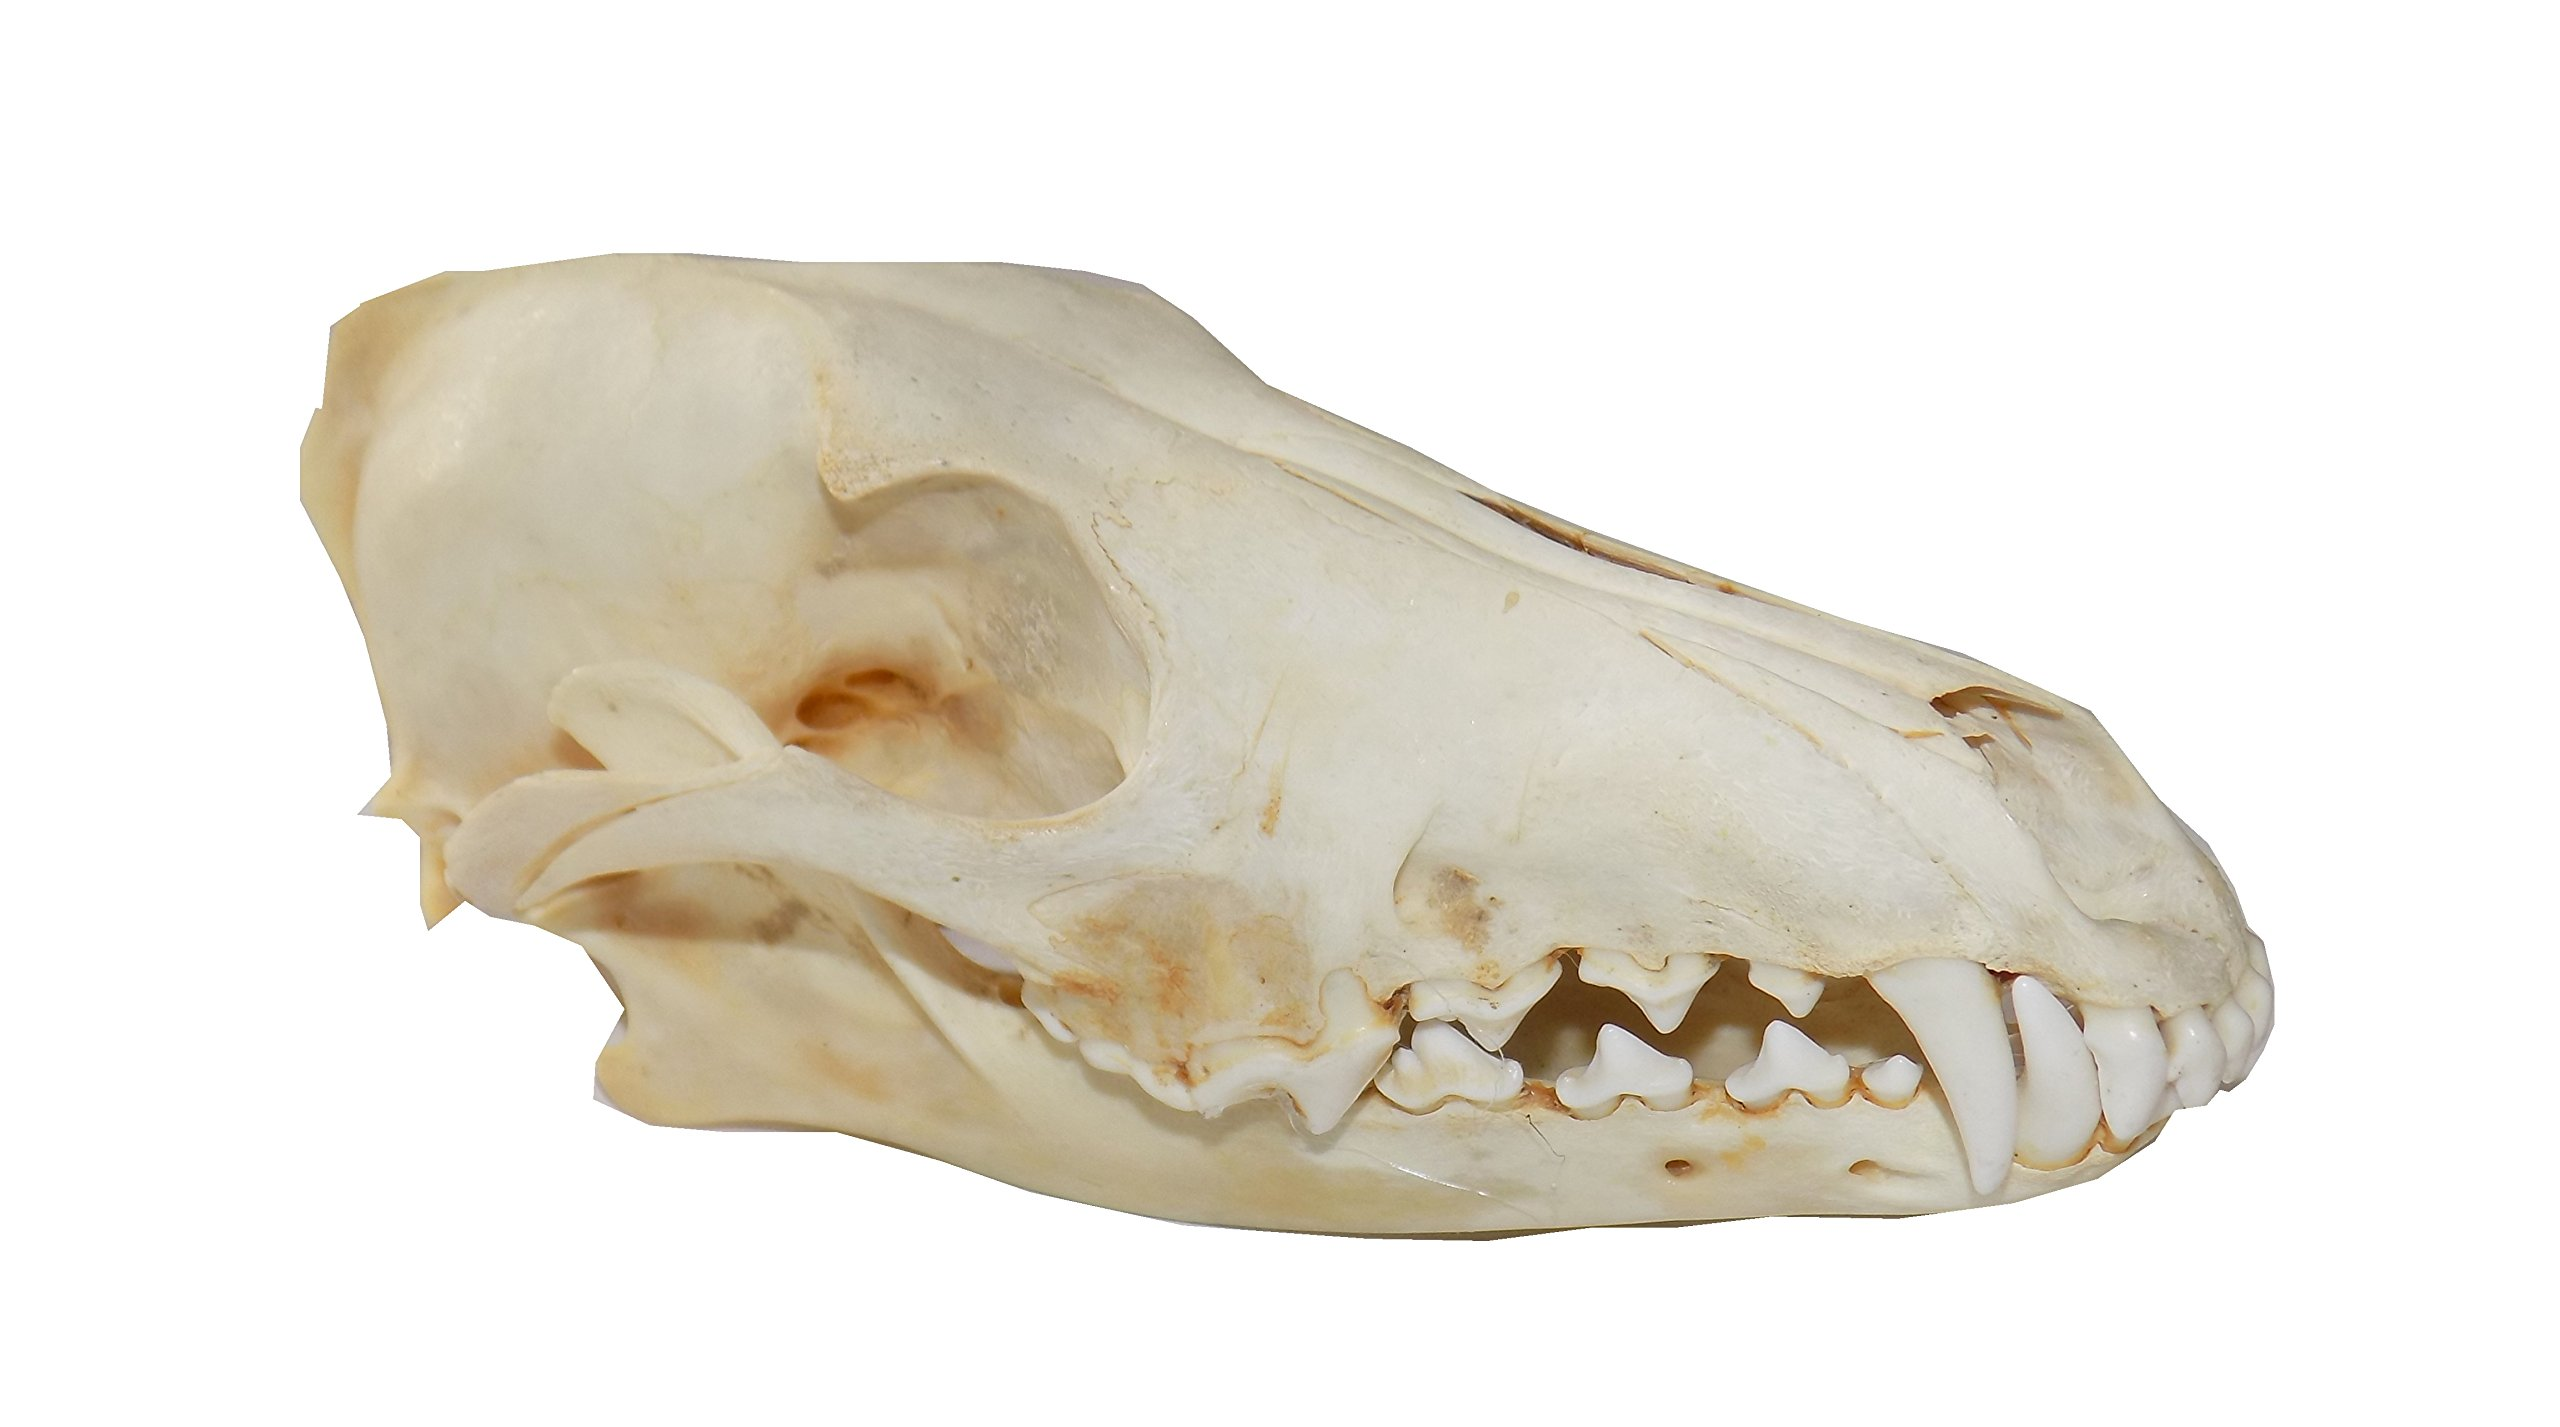 Real Coyote Skull (Cleaned and Assembled Adult American Coyote Skull) by LoneAlaskanGypsy (Image #1)